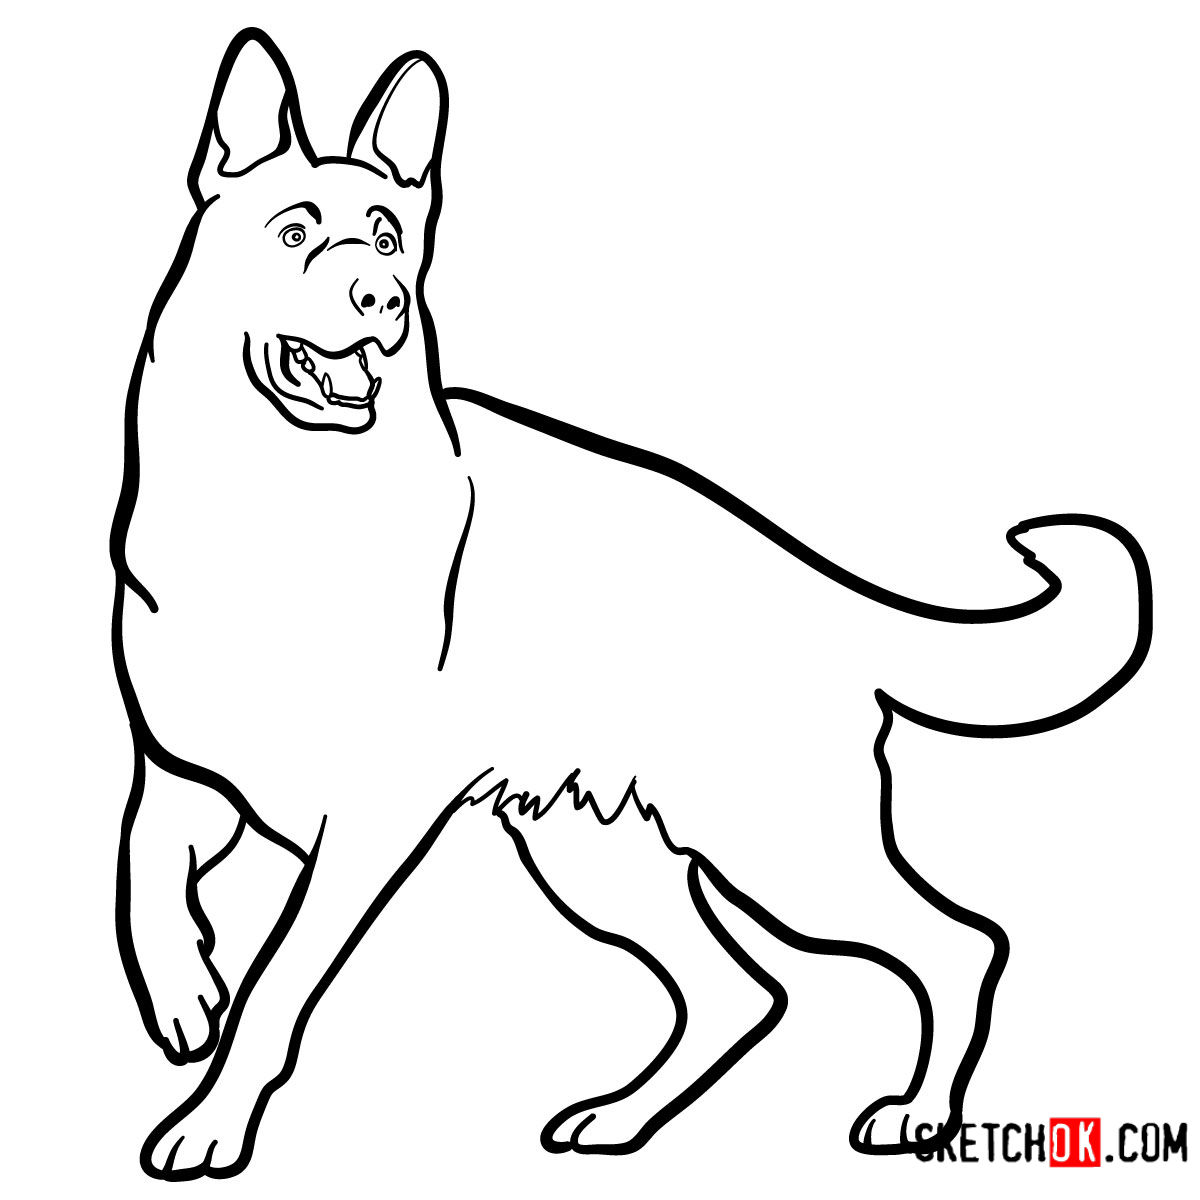 How to draw the German Shepherd dog